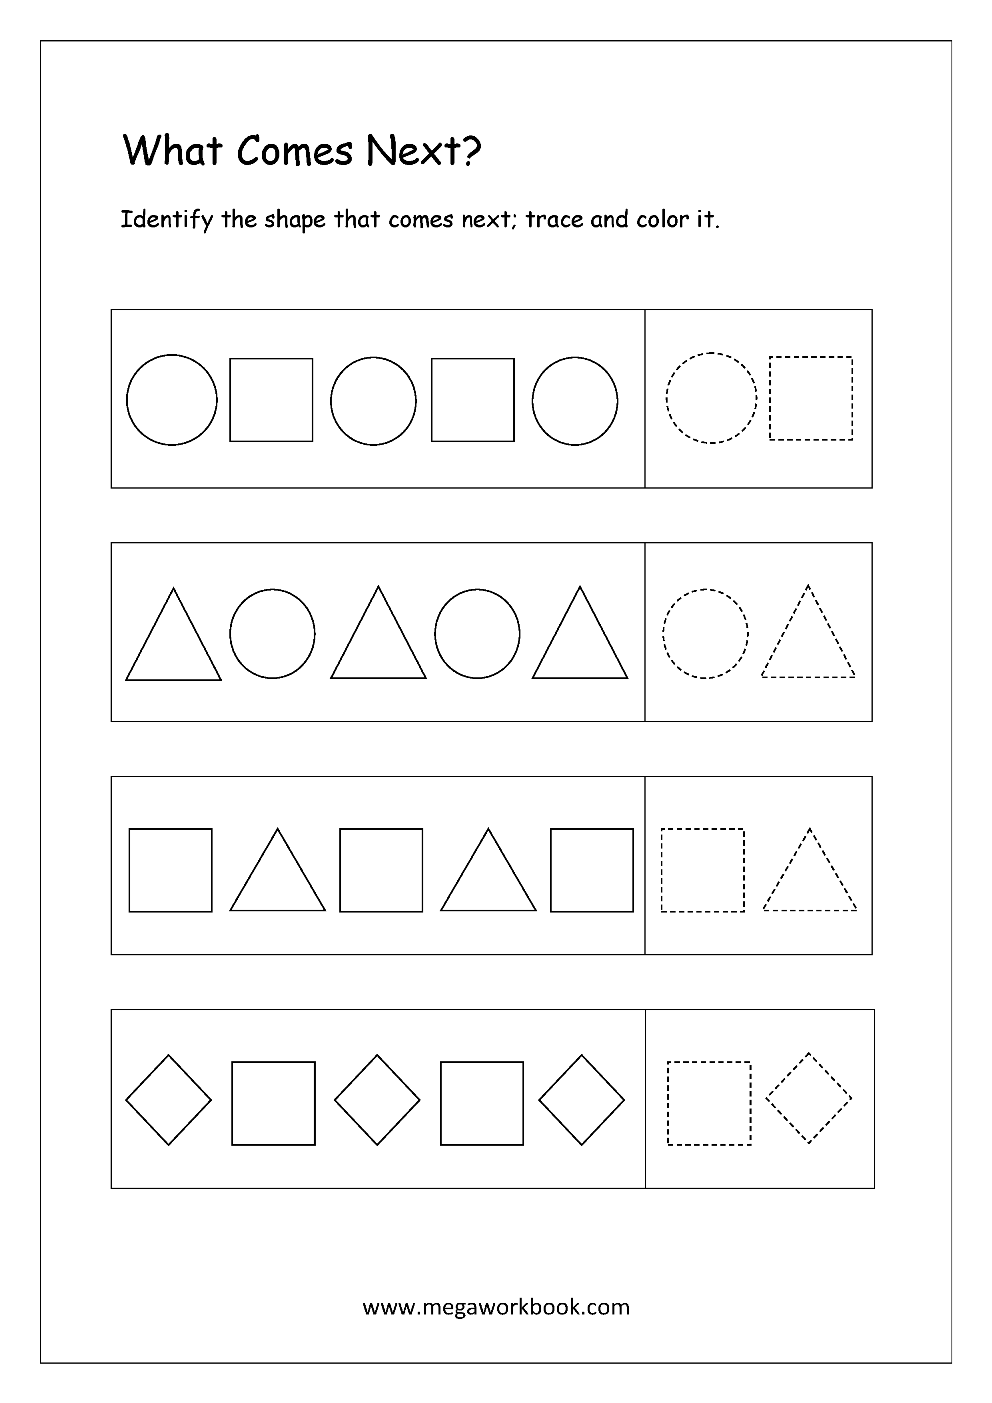 Free Printable Colors Shapes And Pattern Worksheets For Preschool